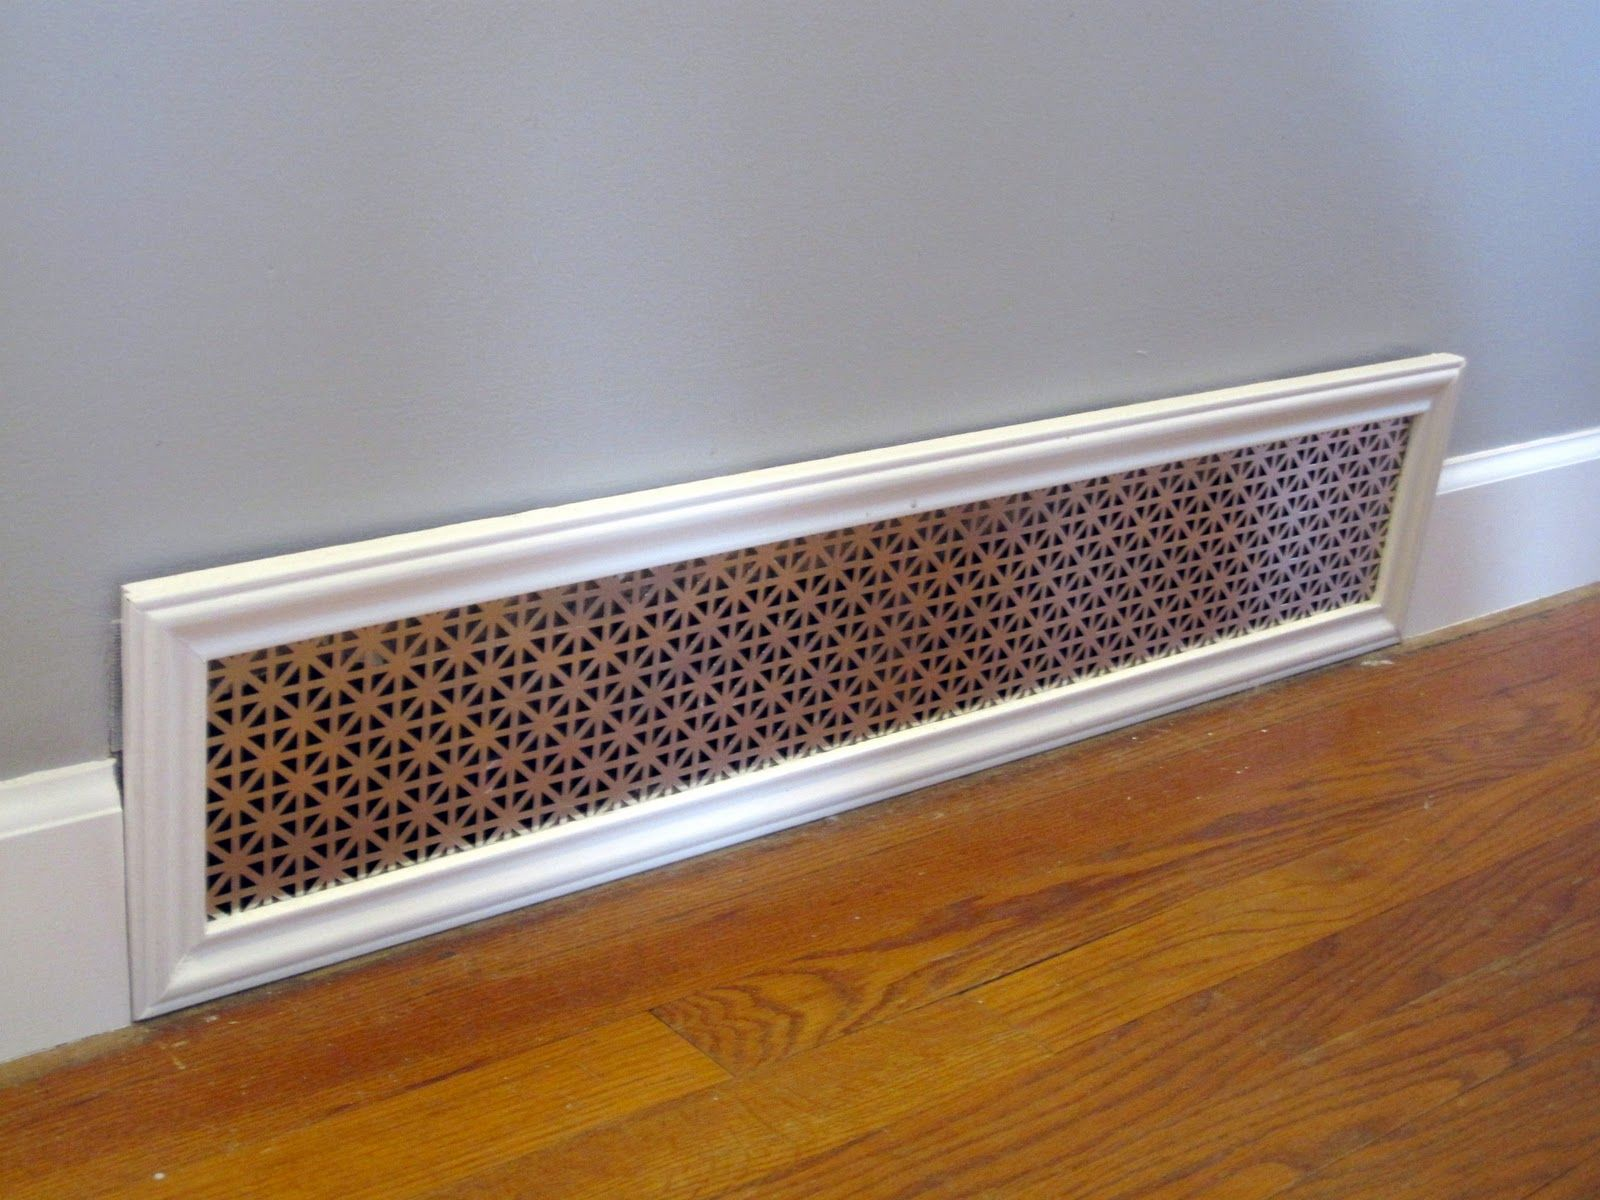 How to cut base molding around wall vent - Decorative Return Air Vent Cover Nicely Framed And Blends With Baseboard